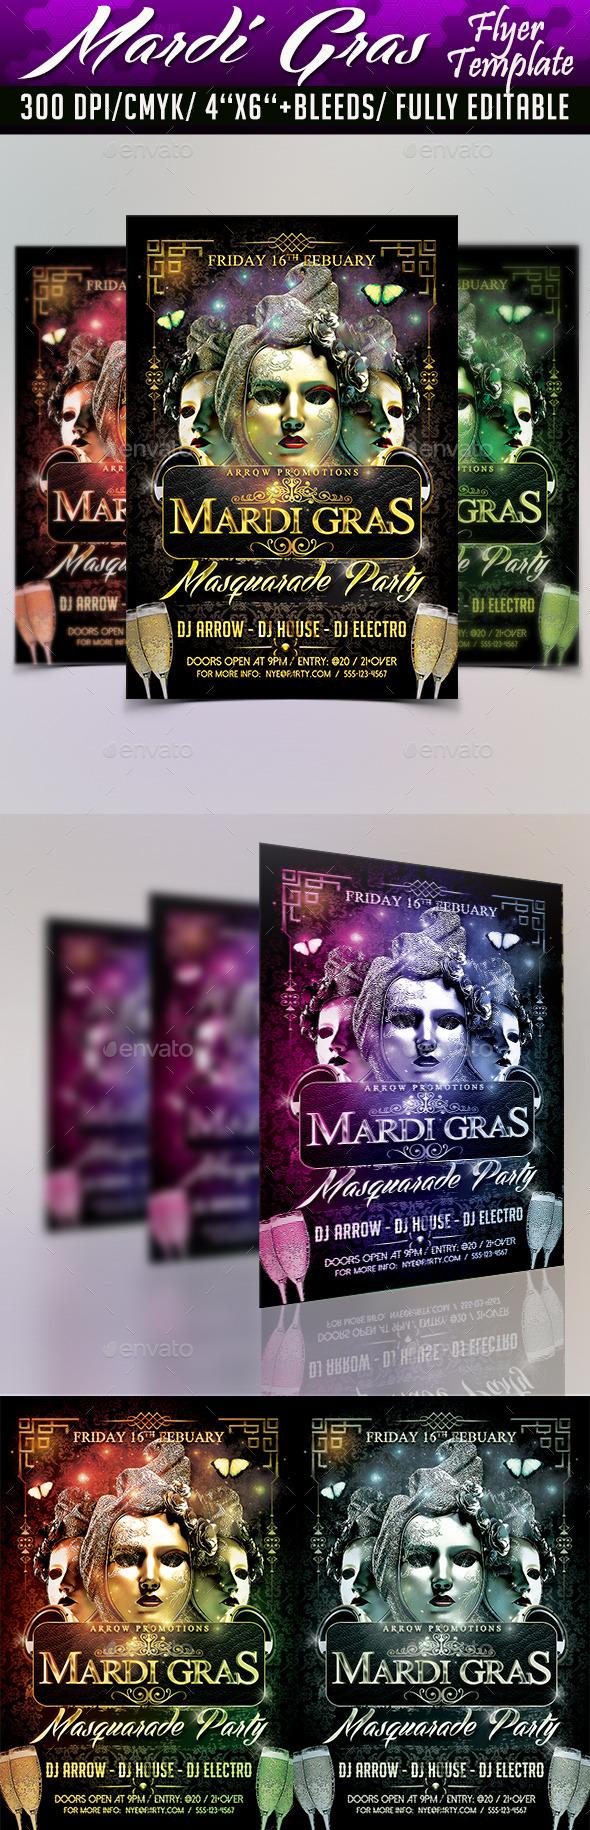 Mardi Gras Masquarade Flyer Template - Clubs & Parties Events